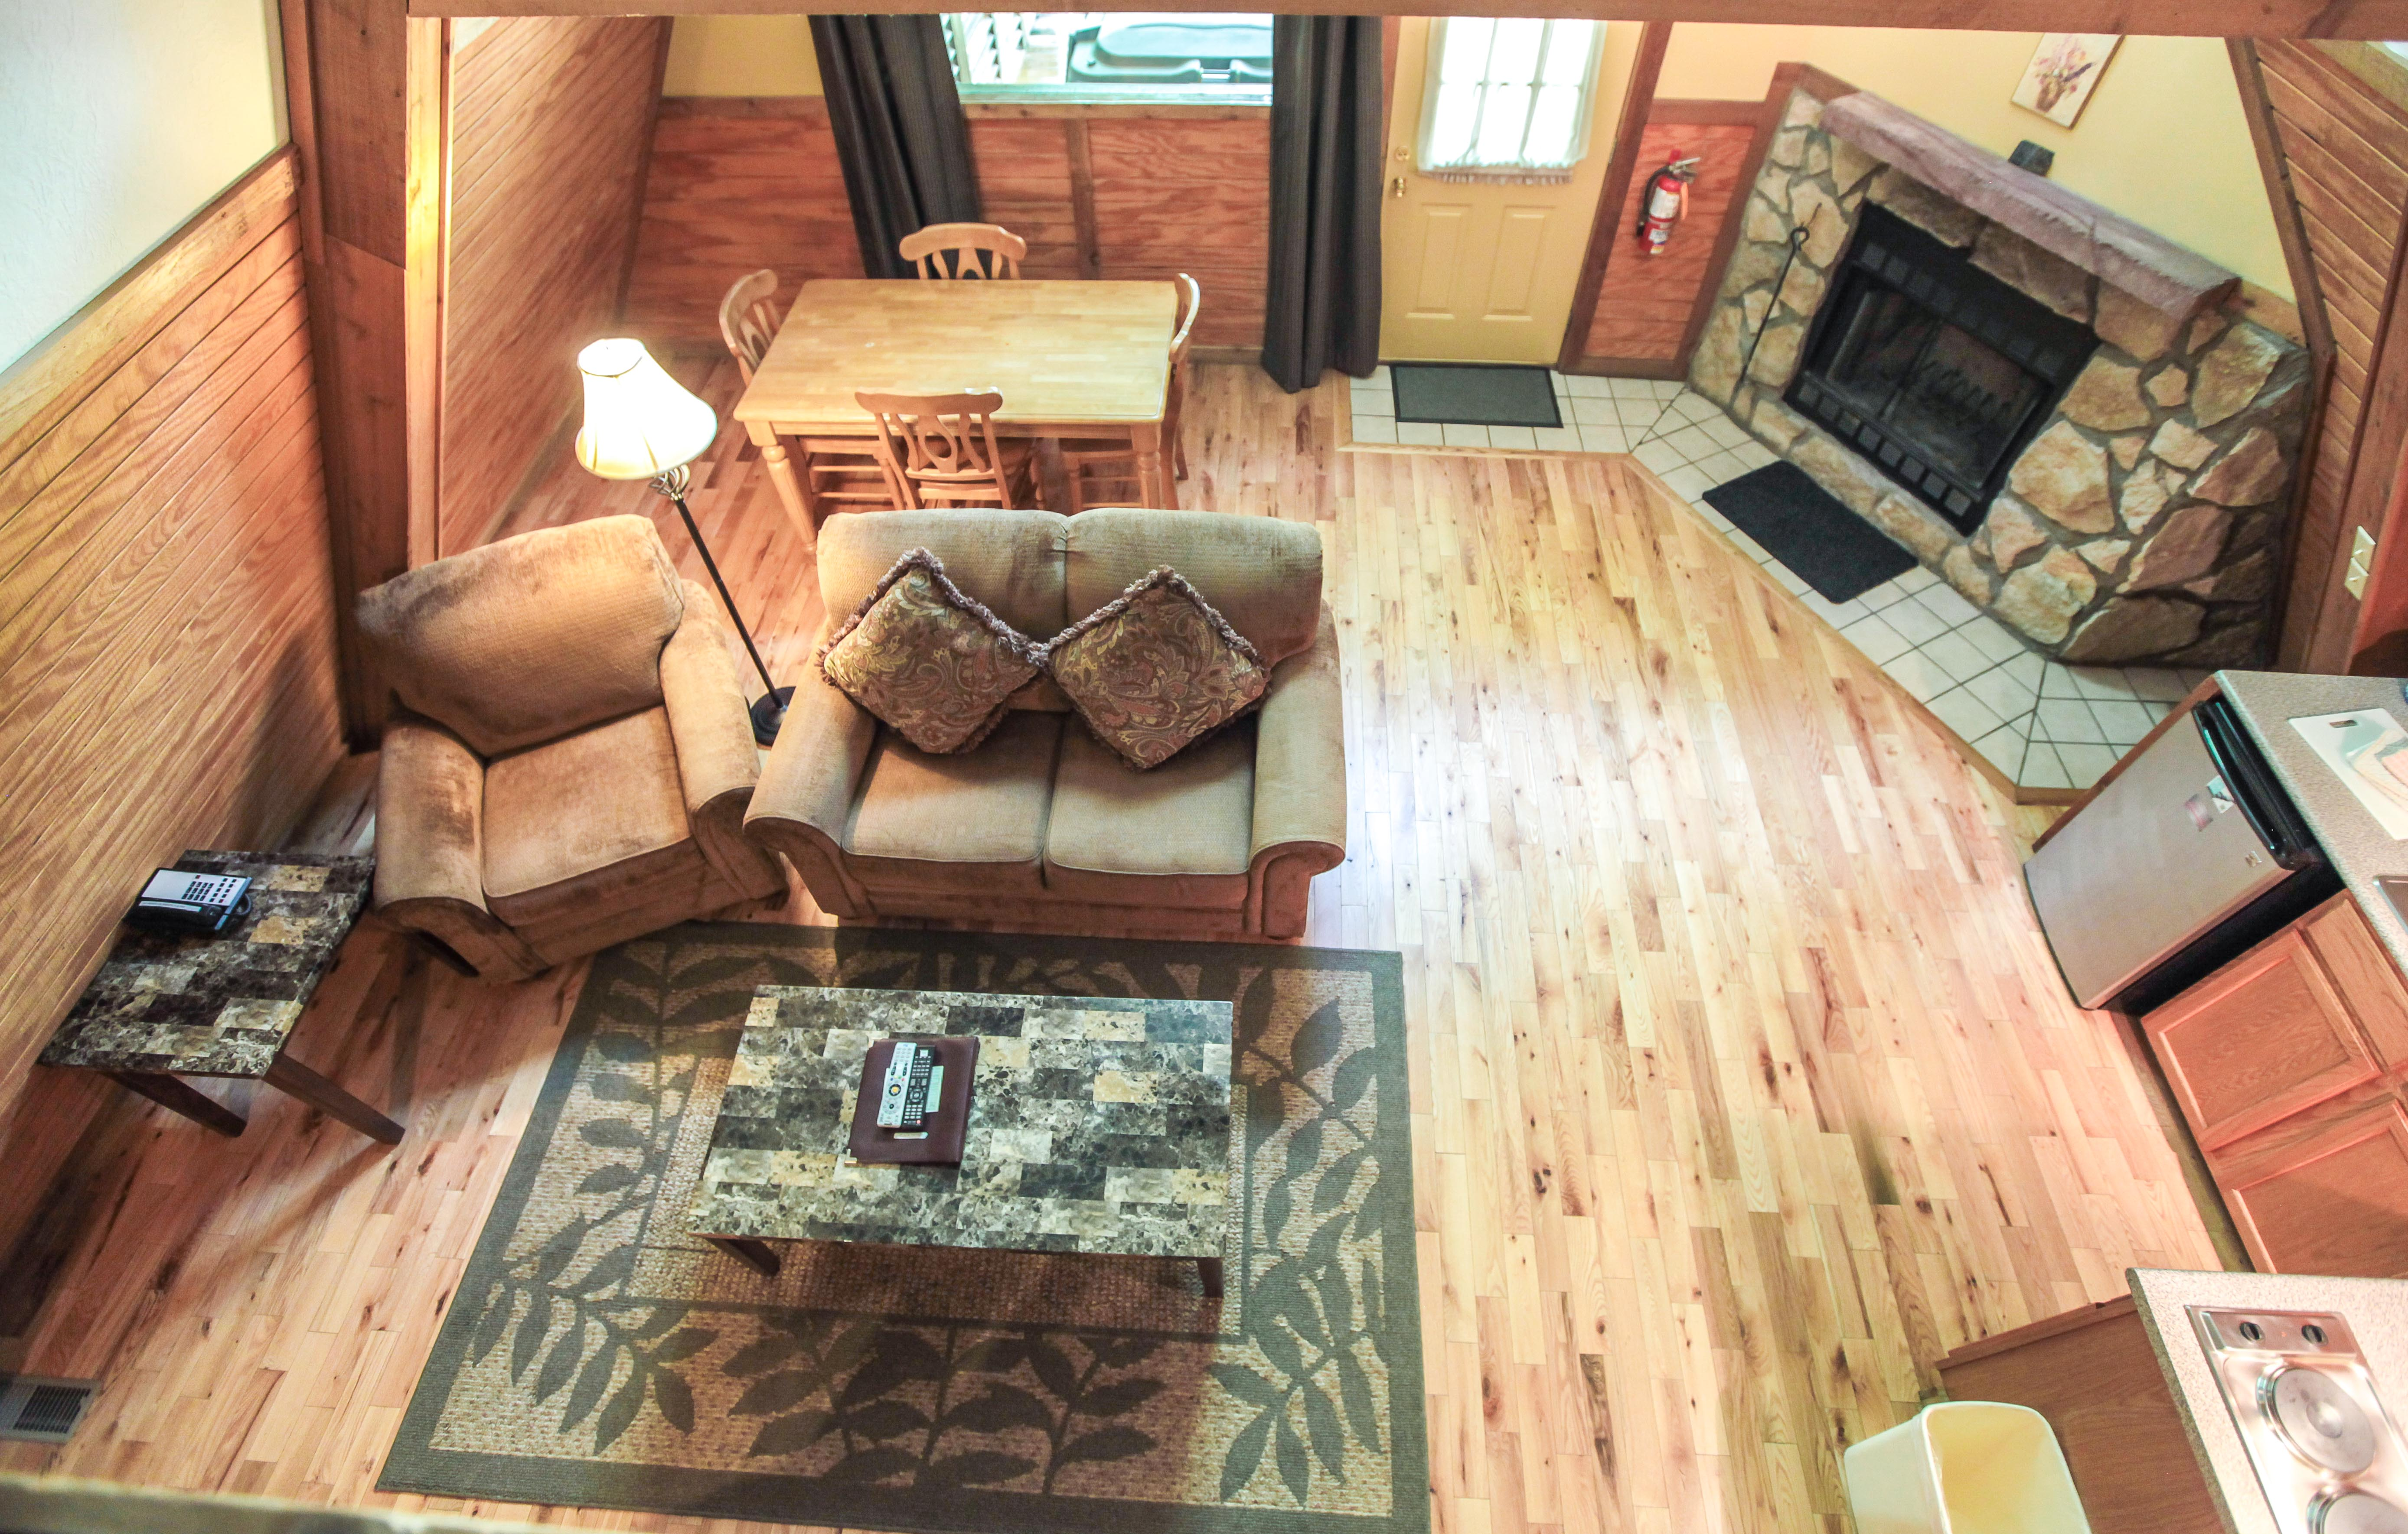 redawning hills ohio escape cabin getaways a romantic in vacation property cabins hocking rental logan frame